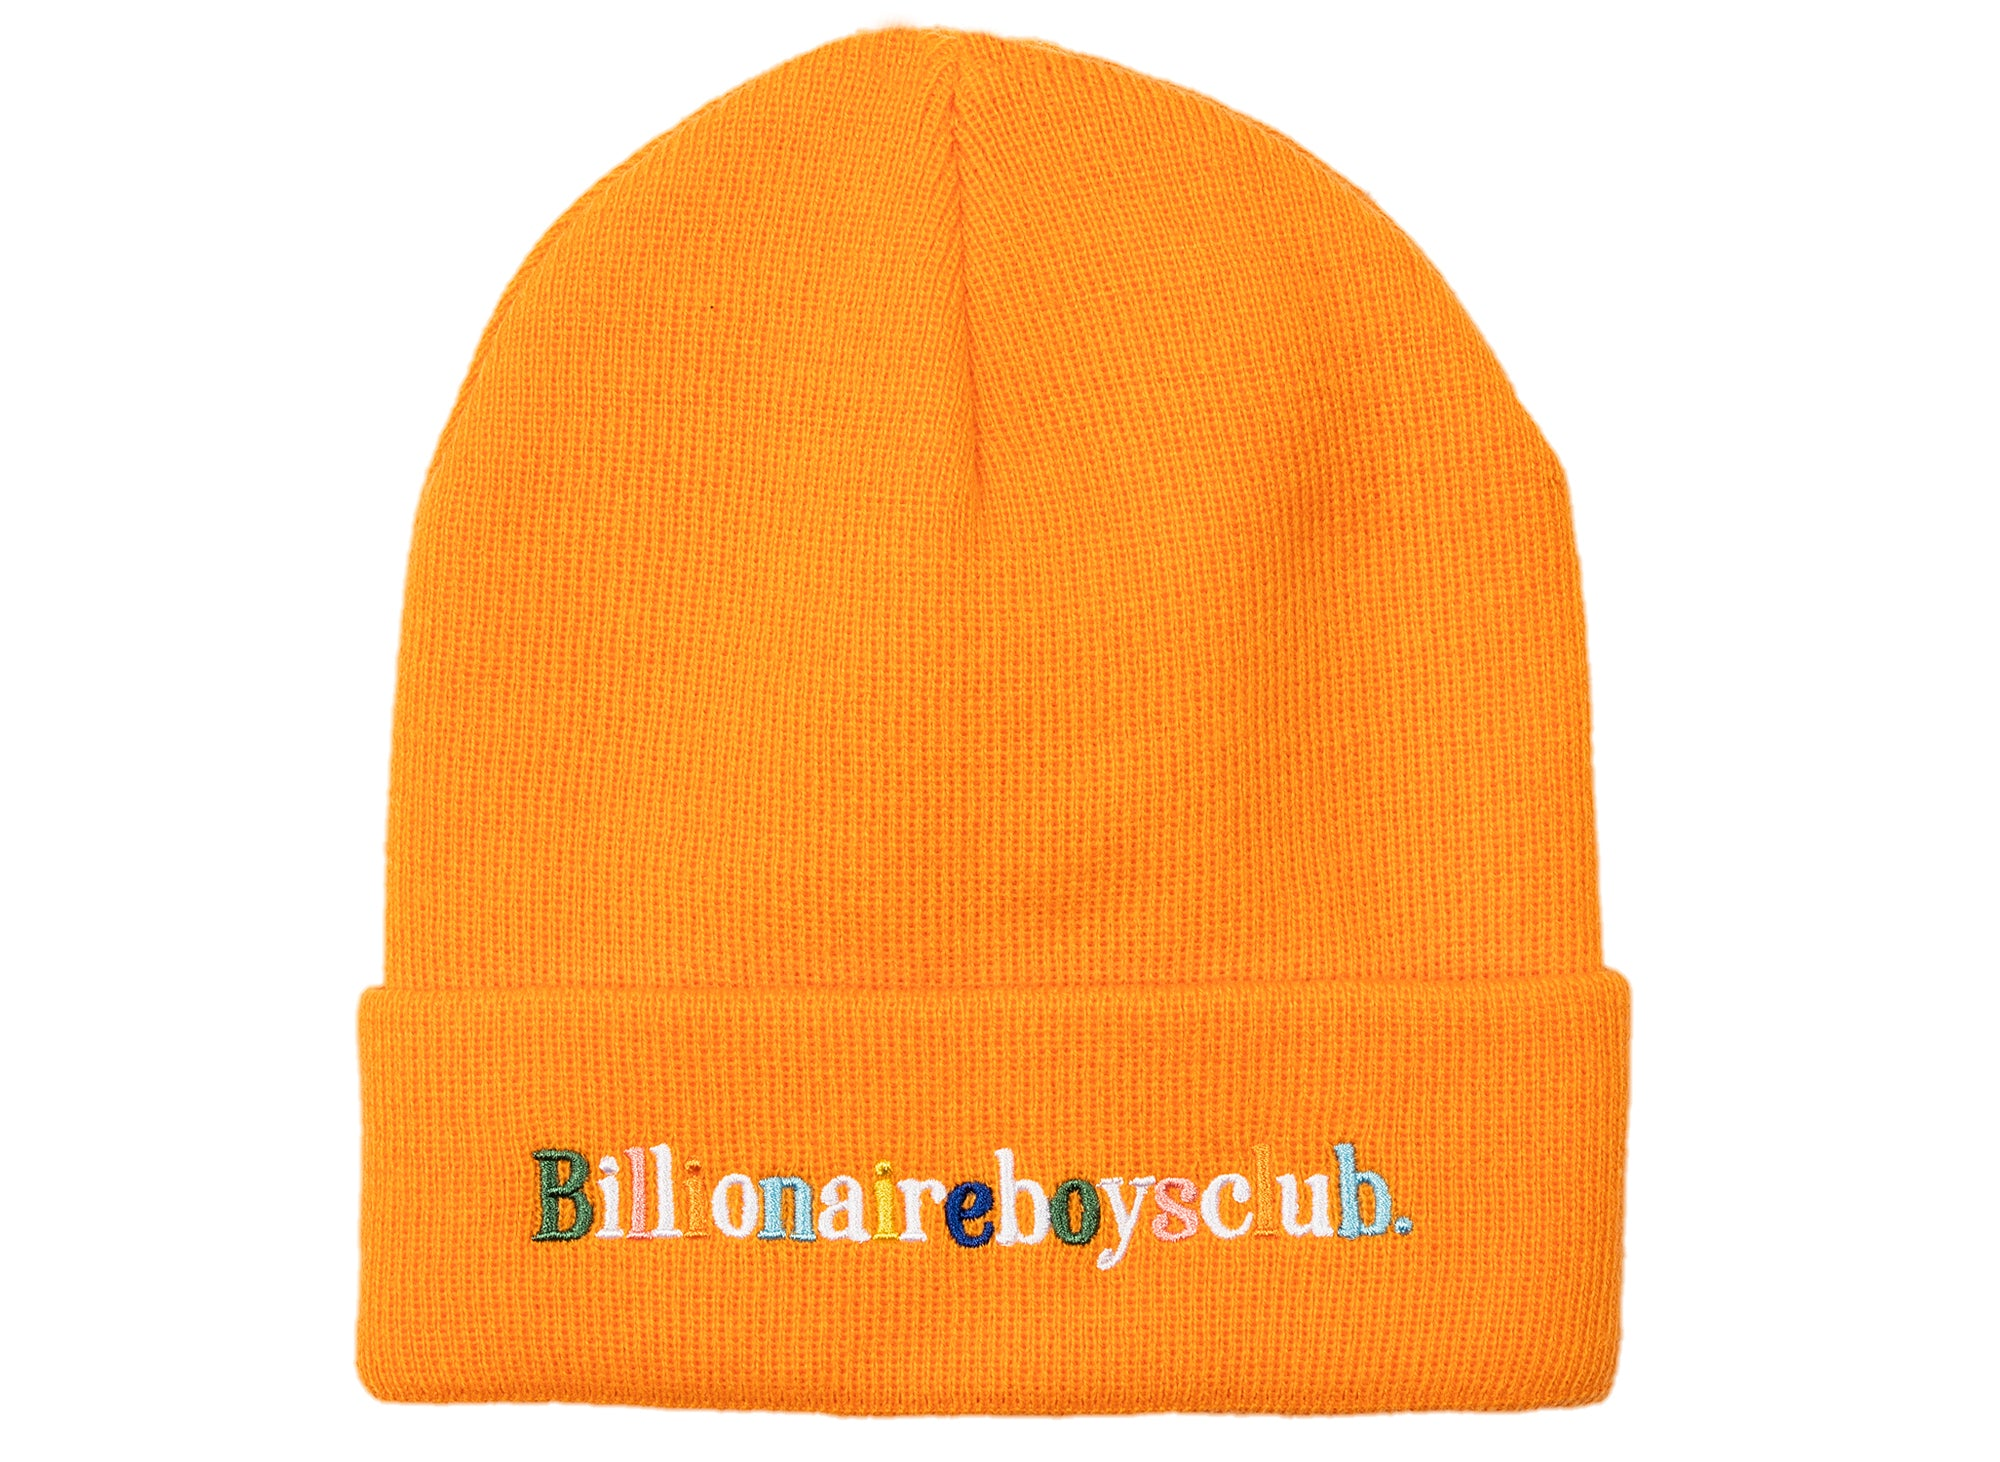 BBC Alphabet Skully Beanie in Orange